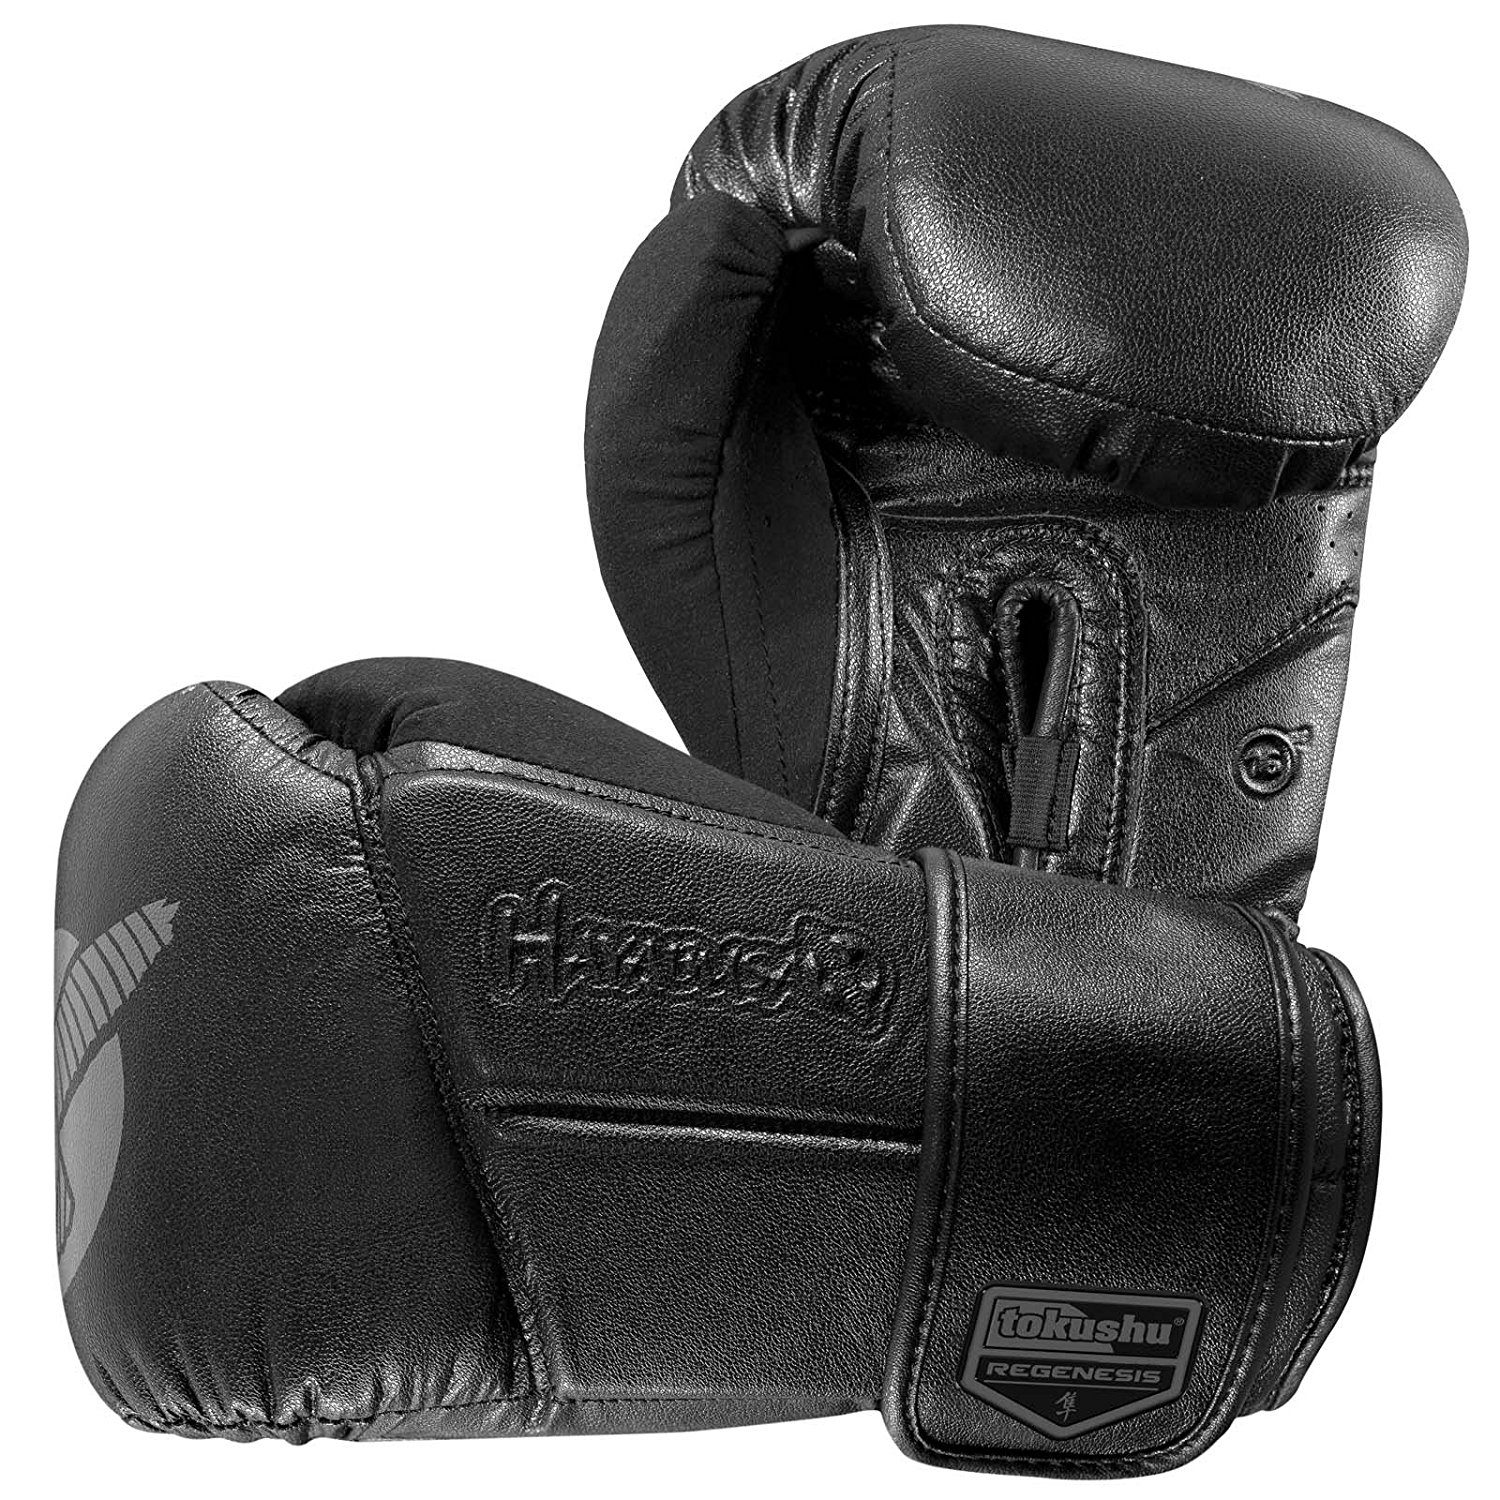 Best Boxing Glove For Heavy Bag Fullcontactway Martial Arts